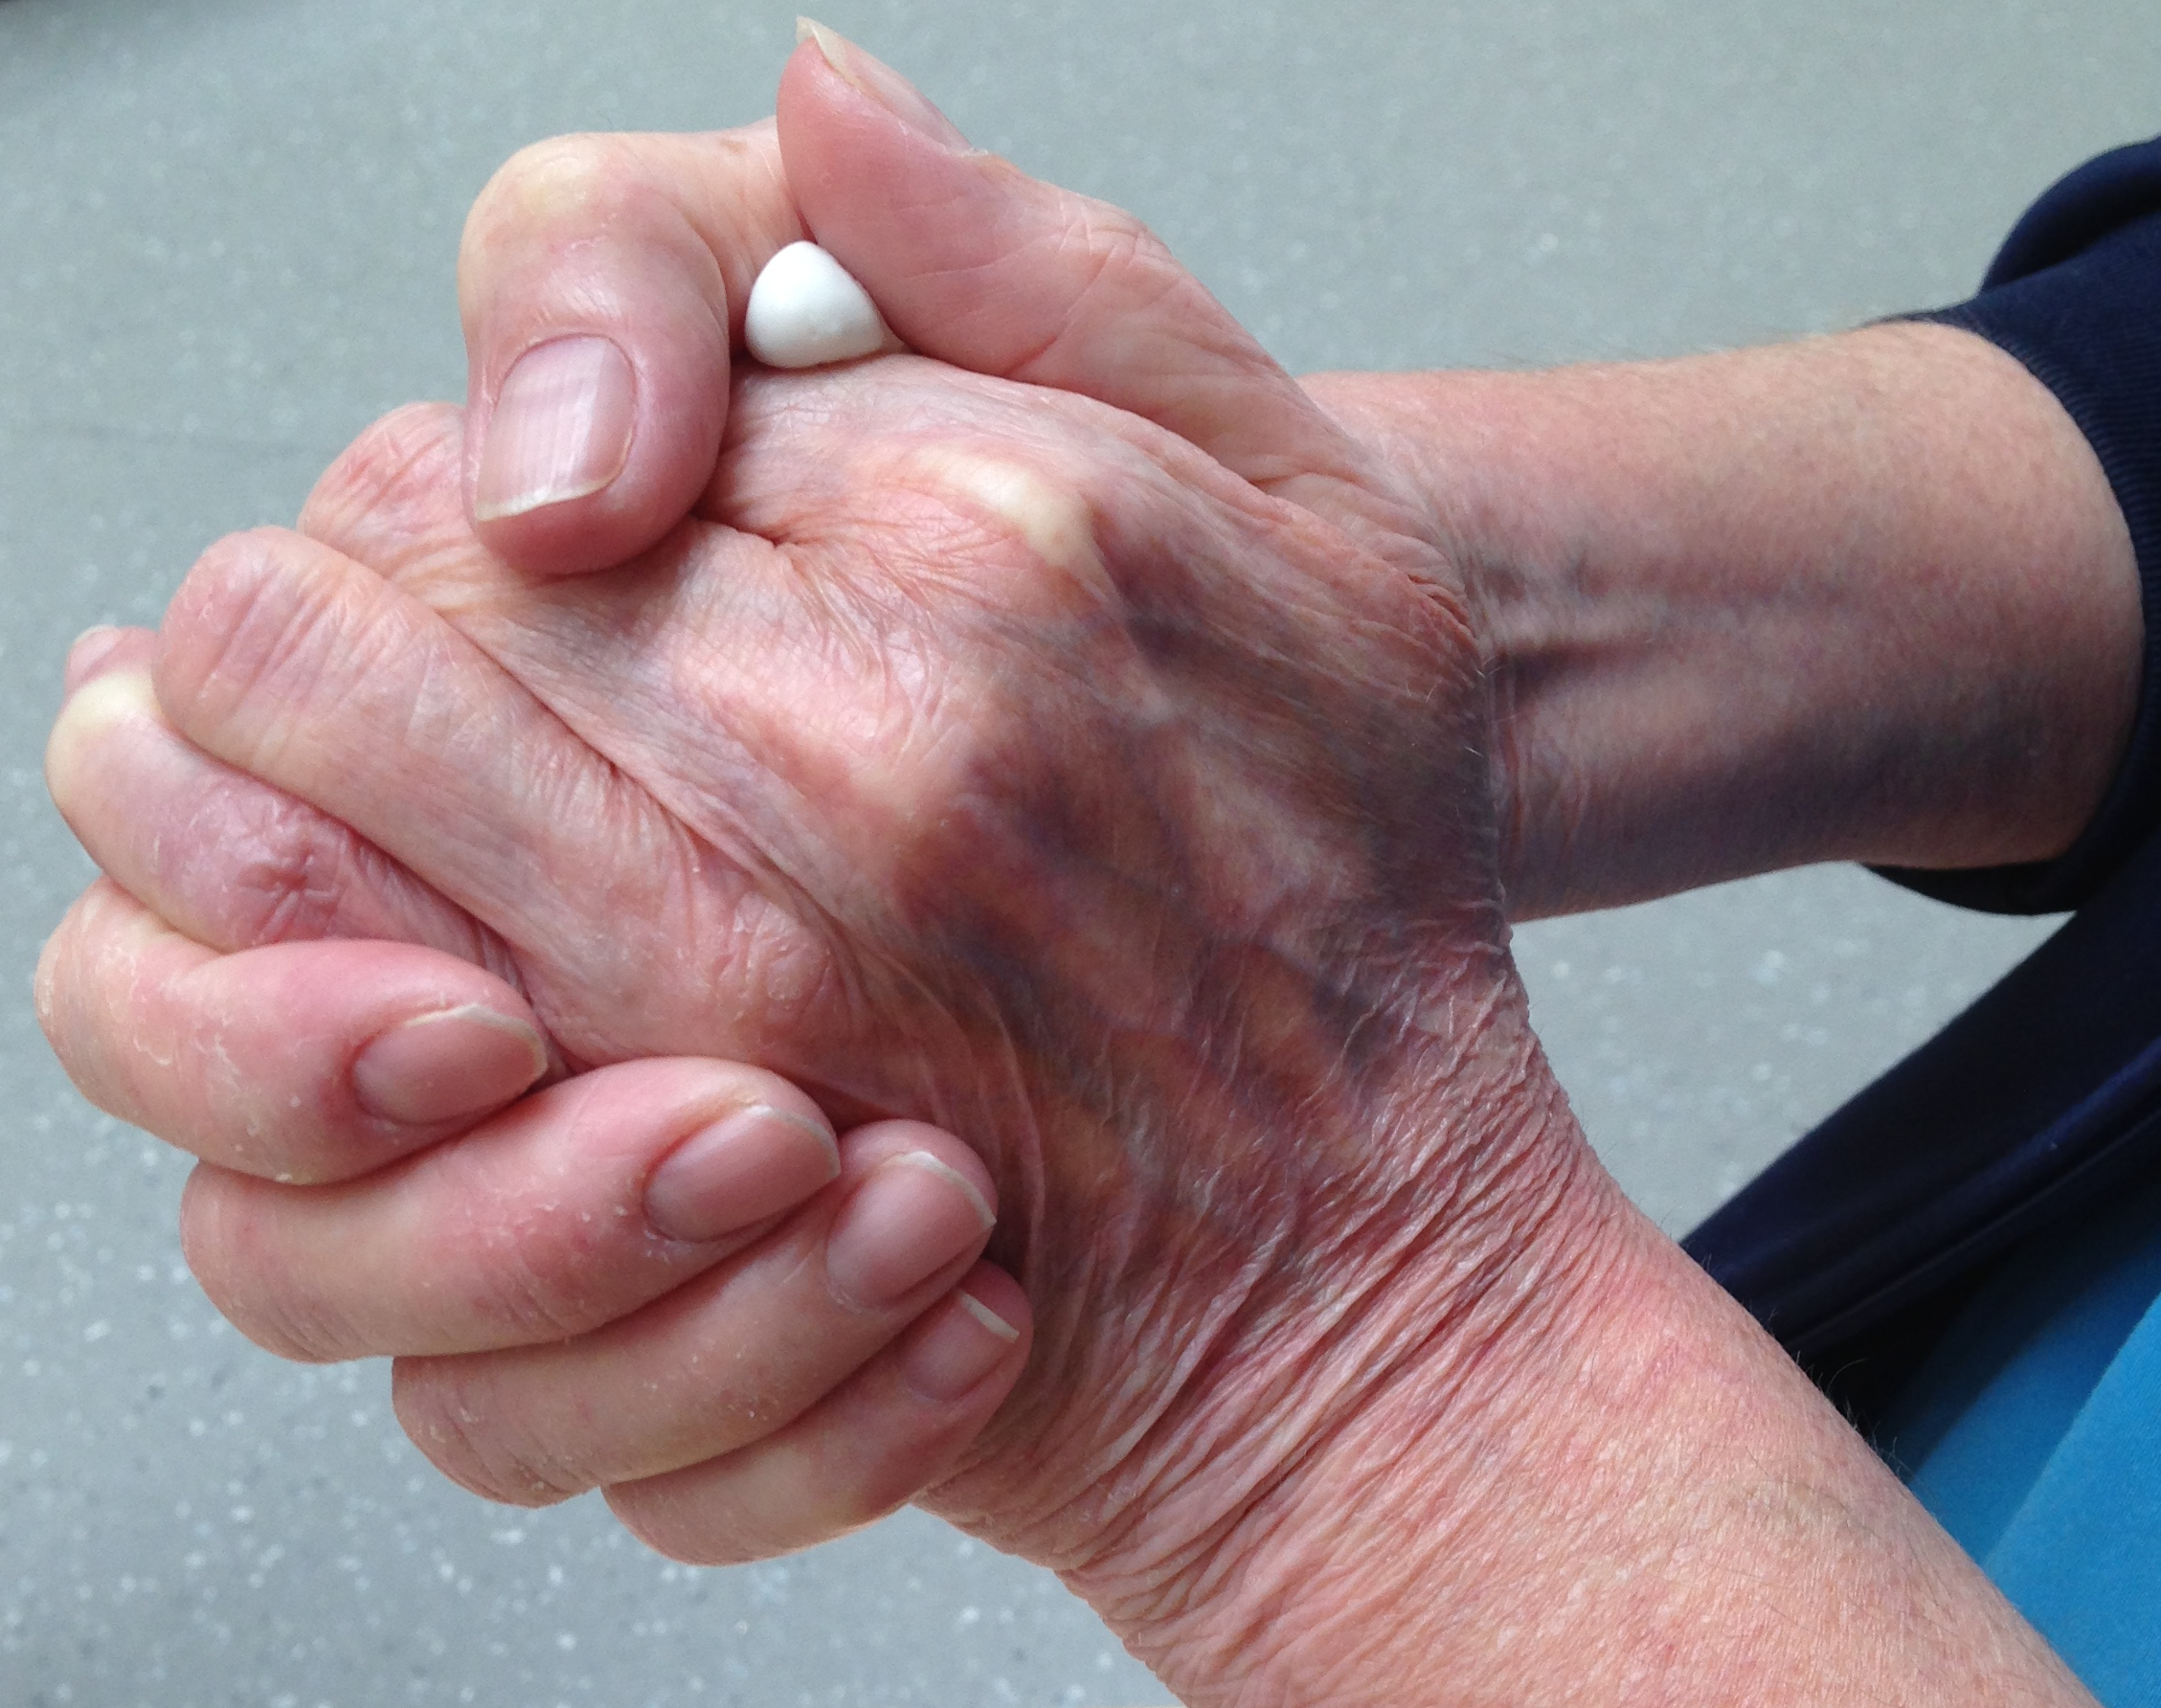 a woman's hands are clasped together, some white substance can be seen slightly oozing out. Part of her nursing uniform can be seen.